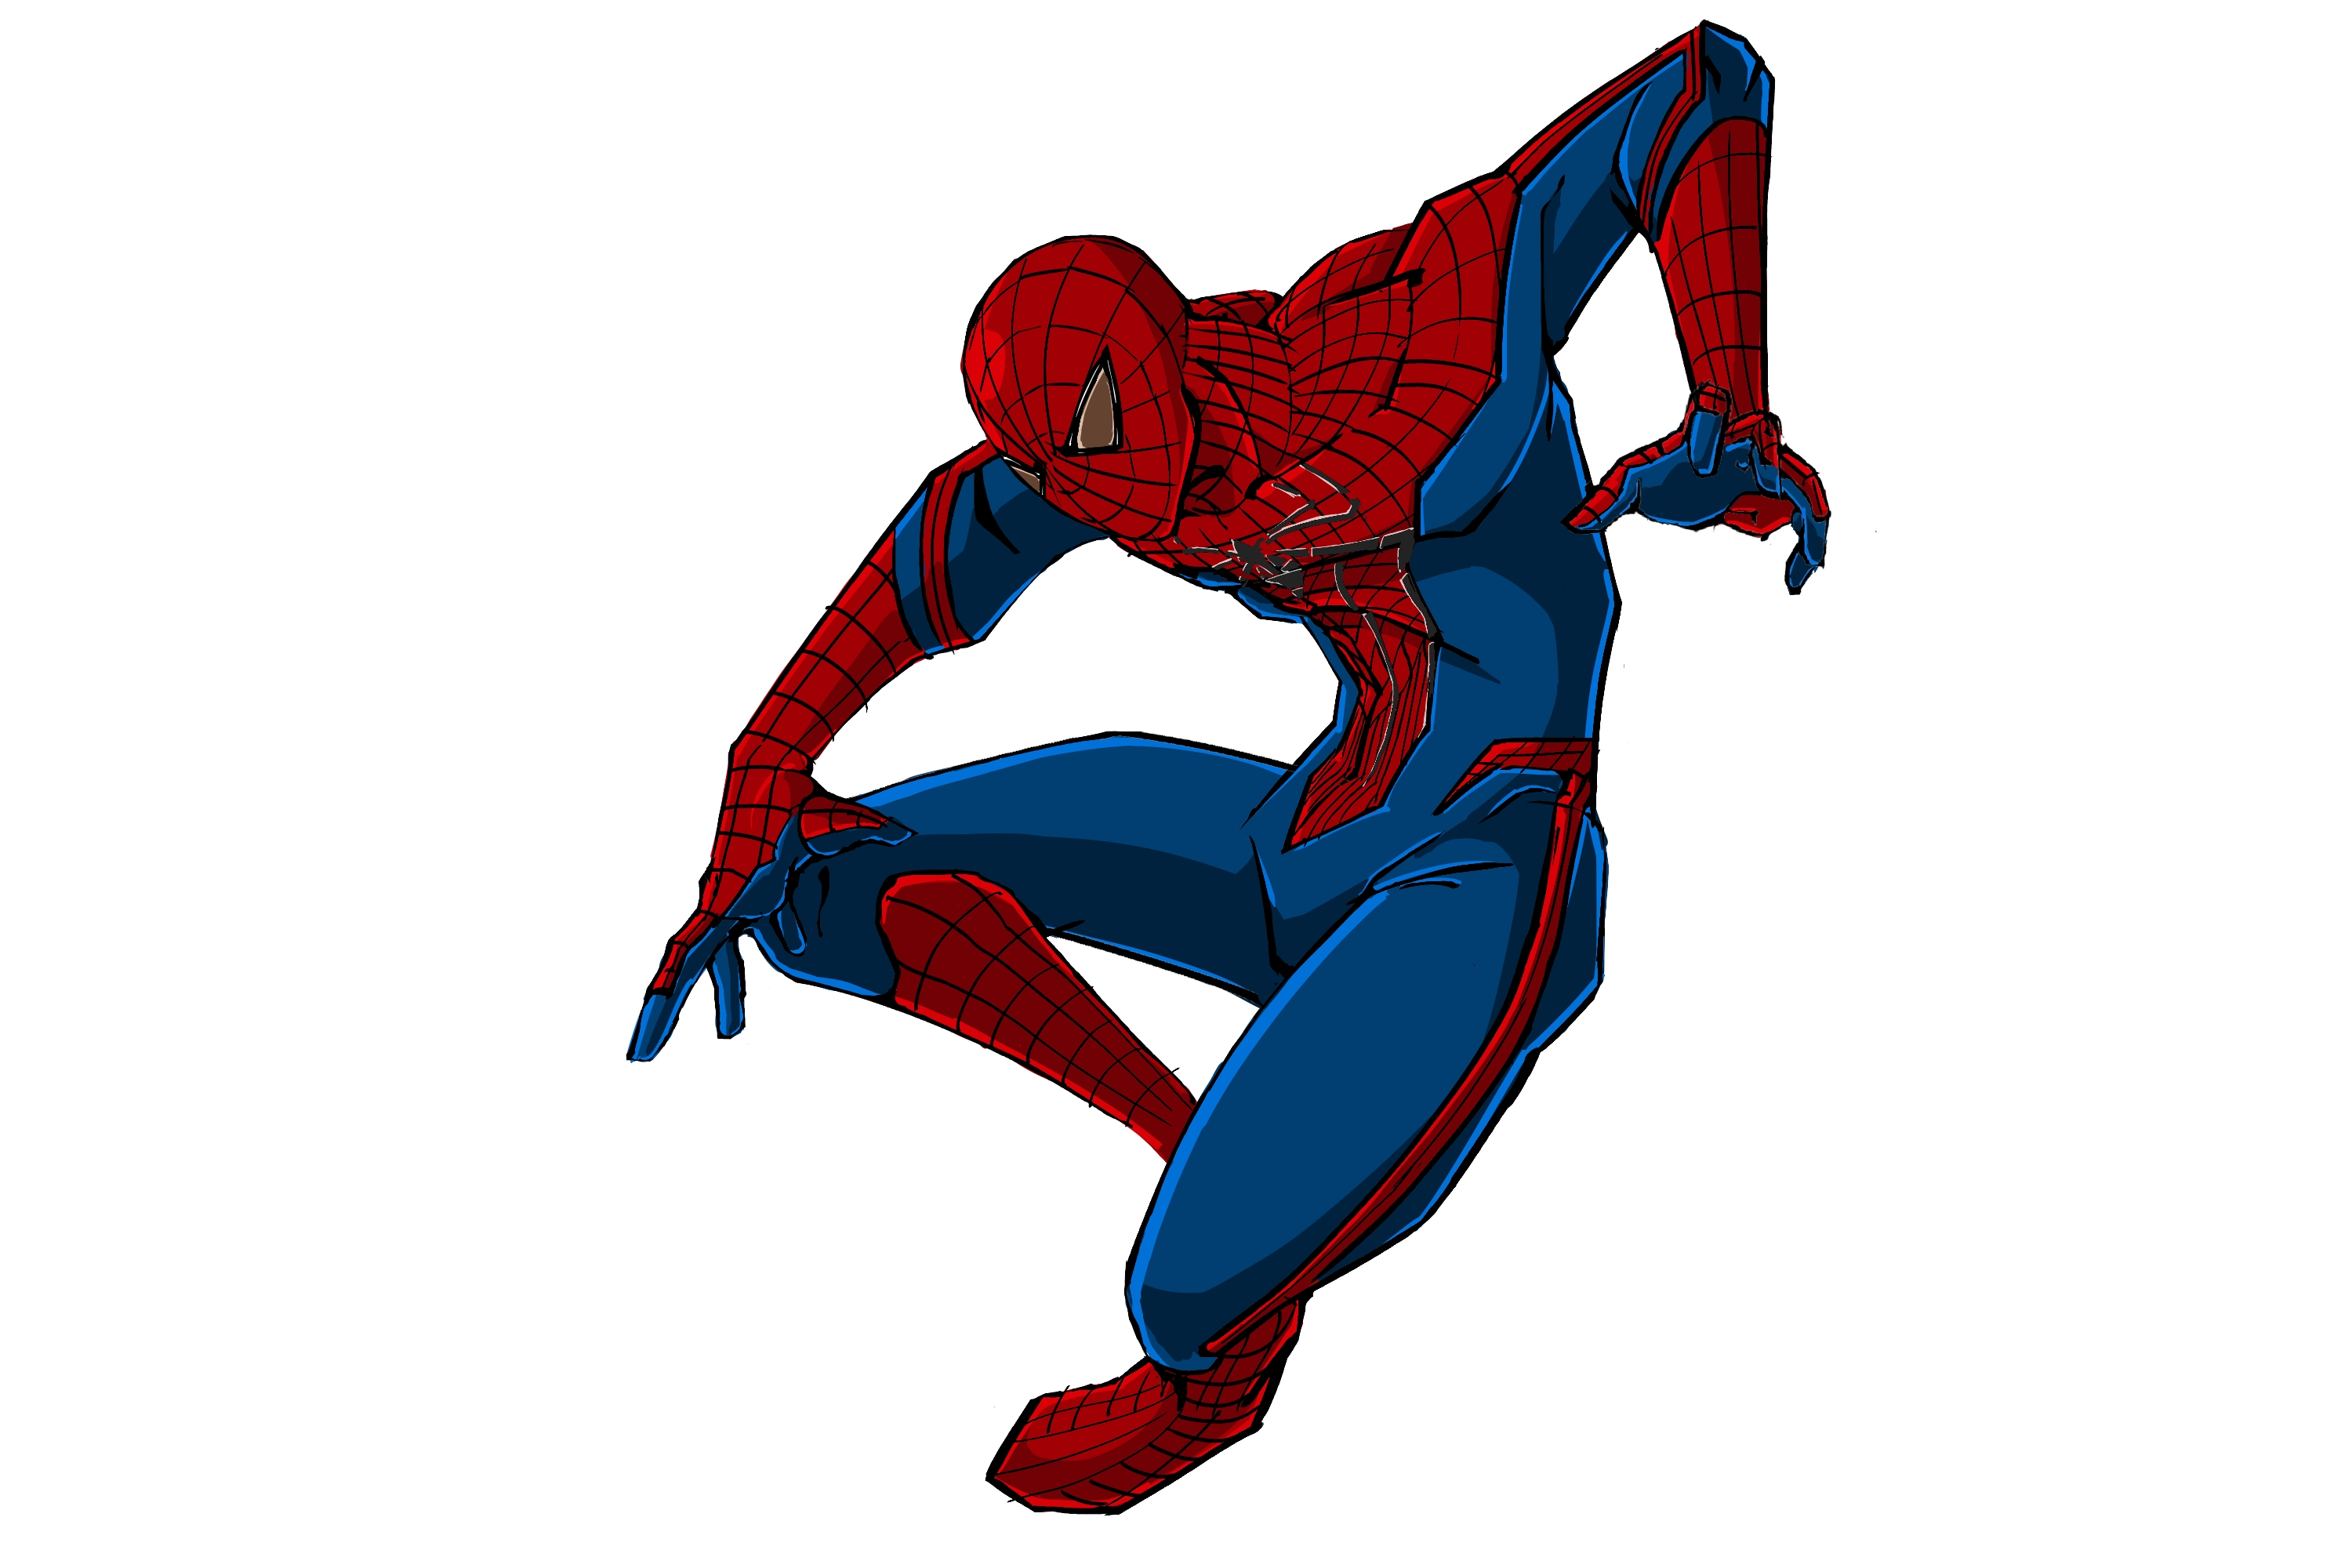 Amazing spider man single link : Girl dating guy 5 years younger